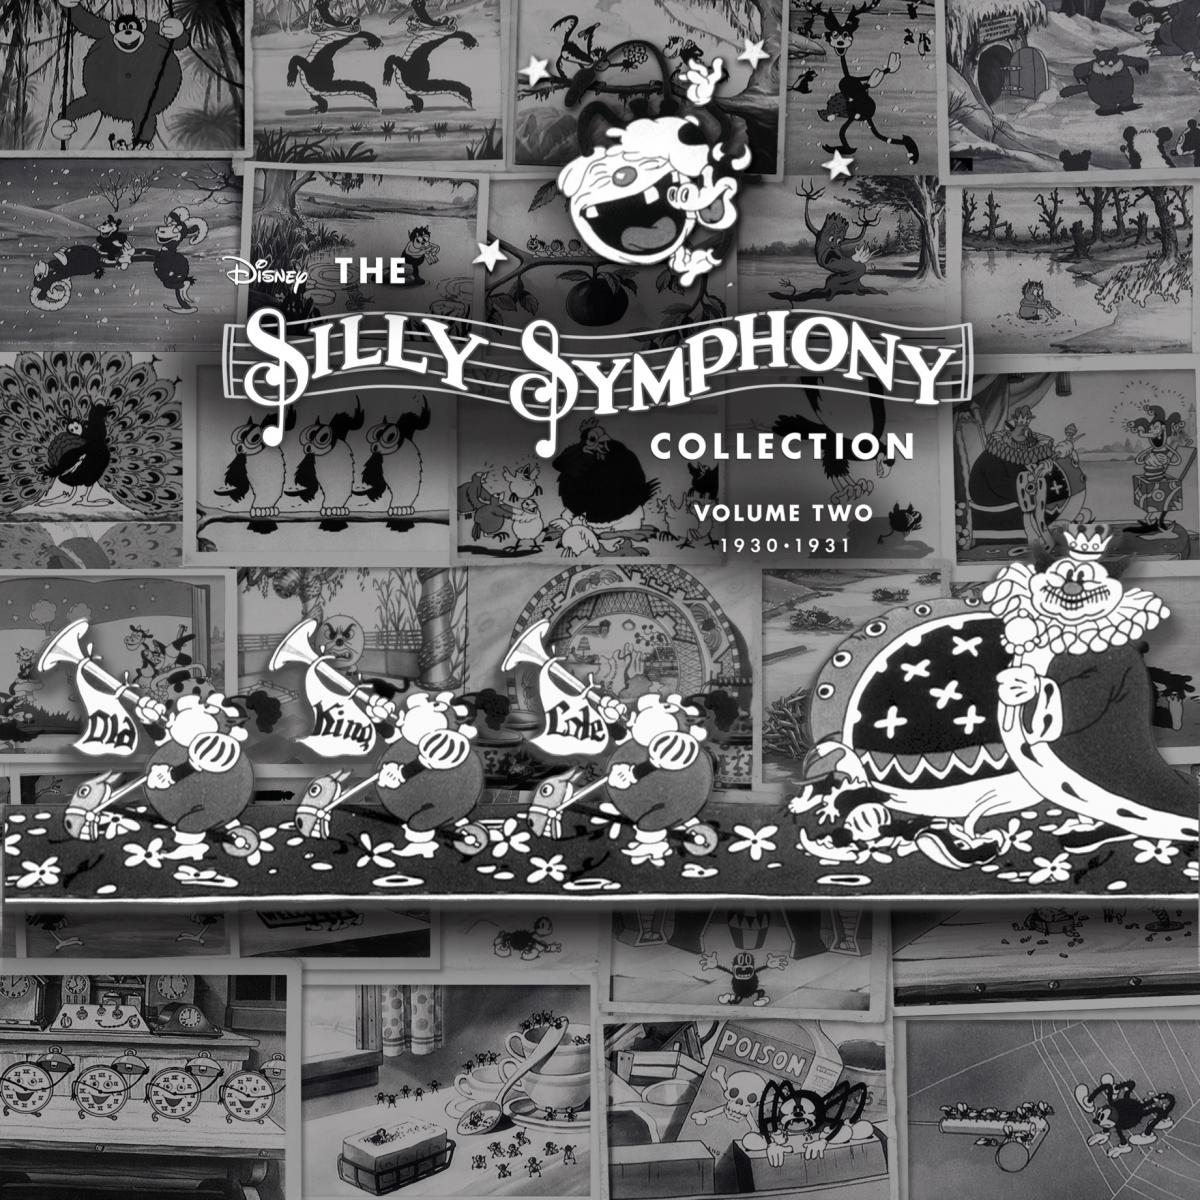 Disney The Silly Symphony LP Volume 2 Cover Art